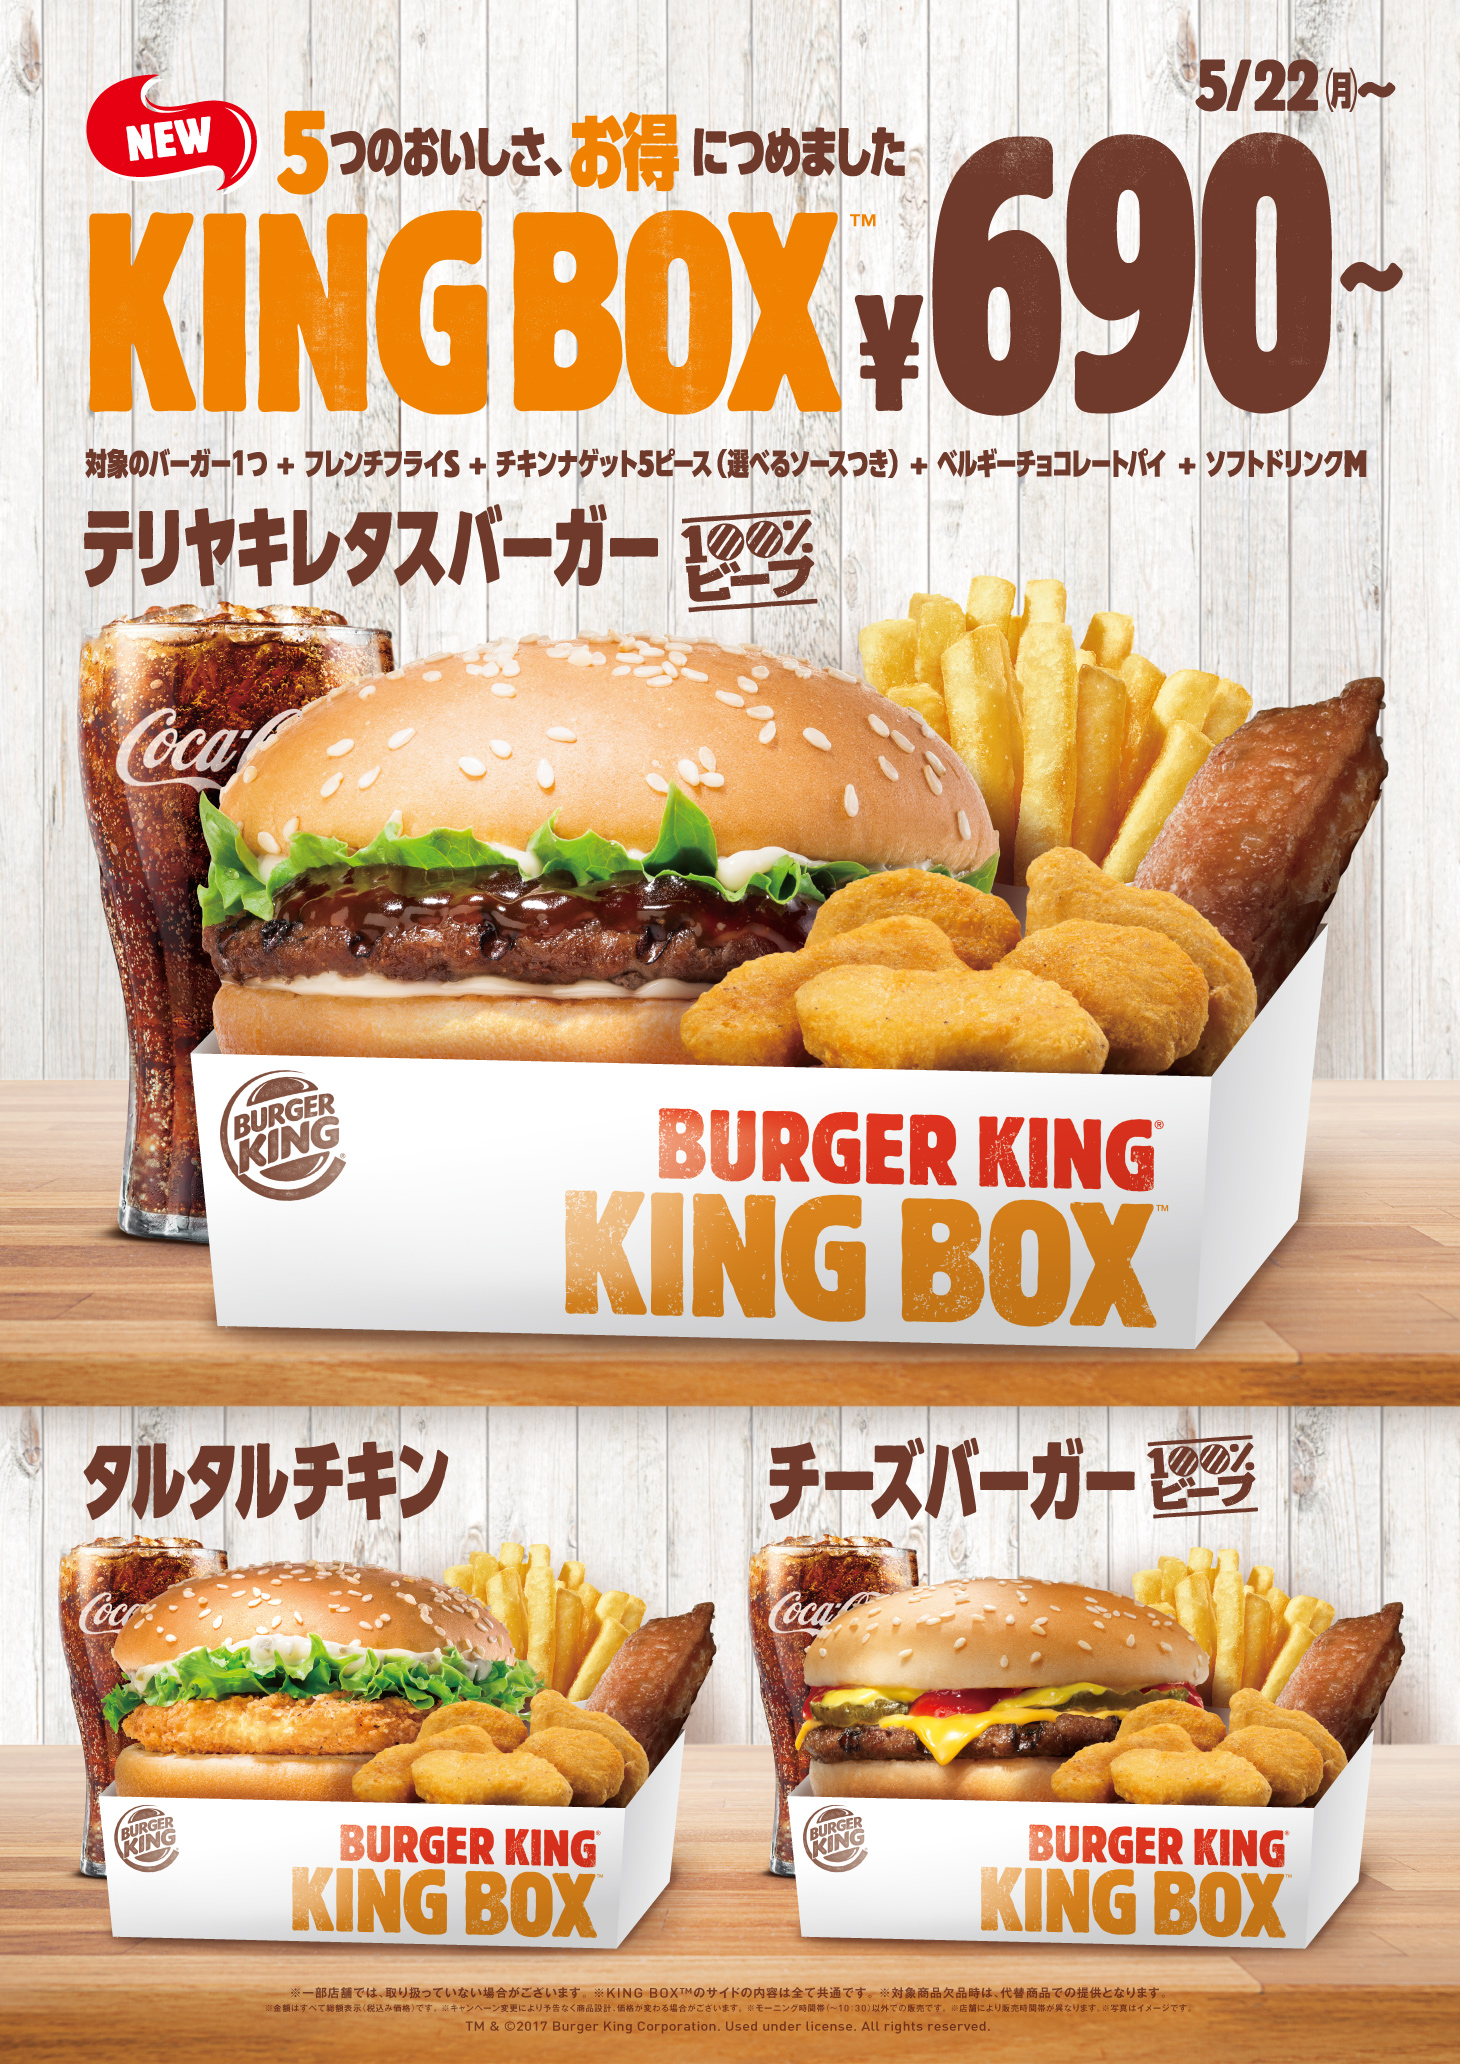 burgerking king box